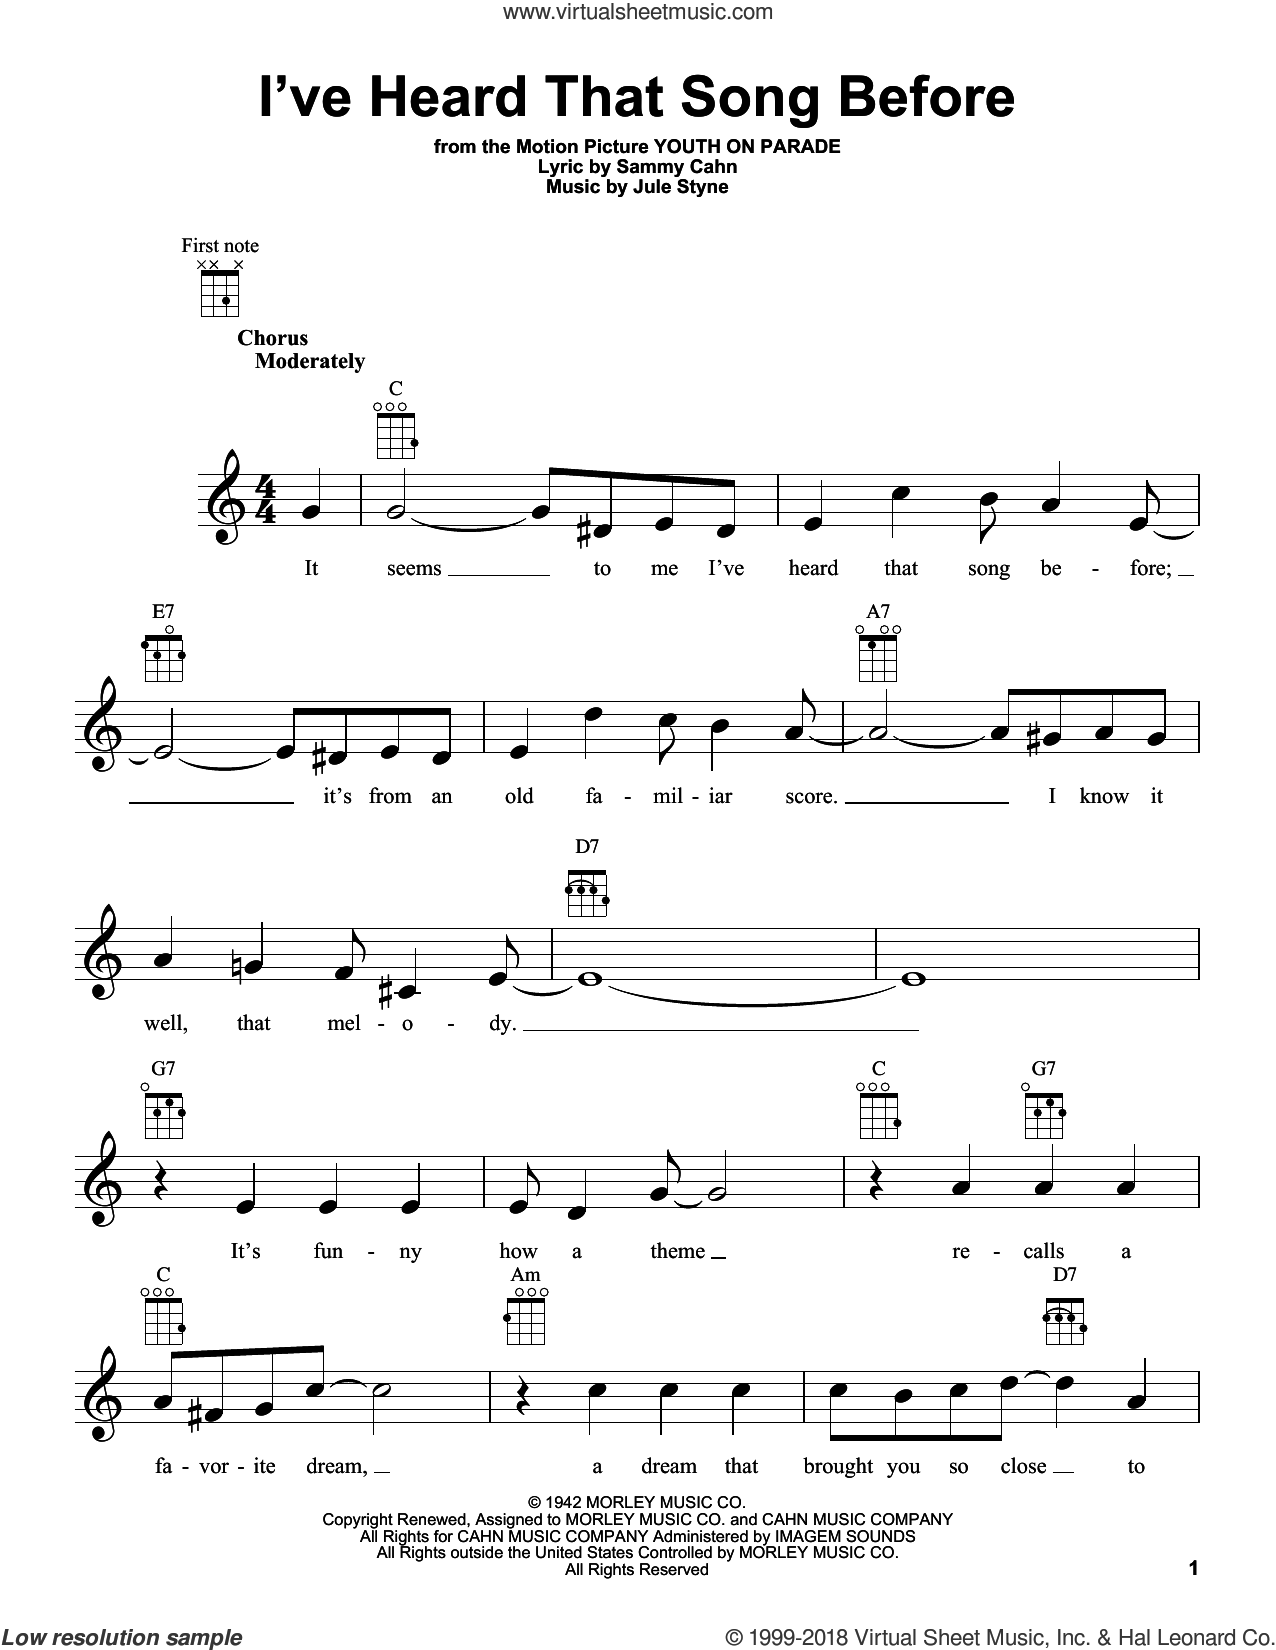 I've Heard That Song Before sheet music for ukulele by Sammy Cahn and Jule Styne, intermediate skill level